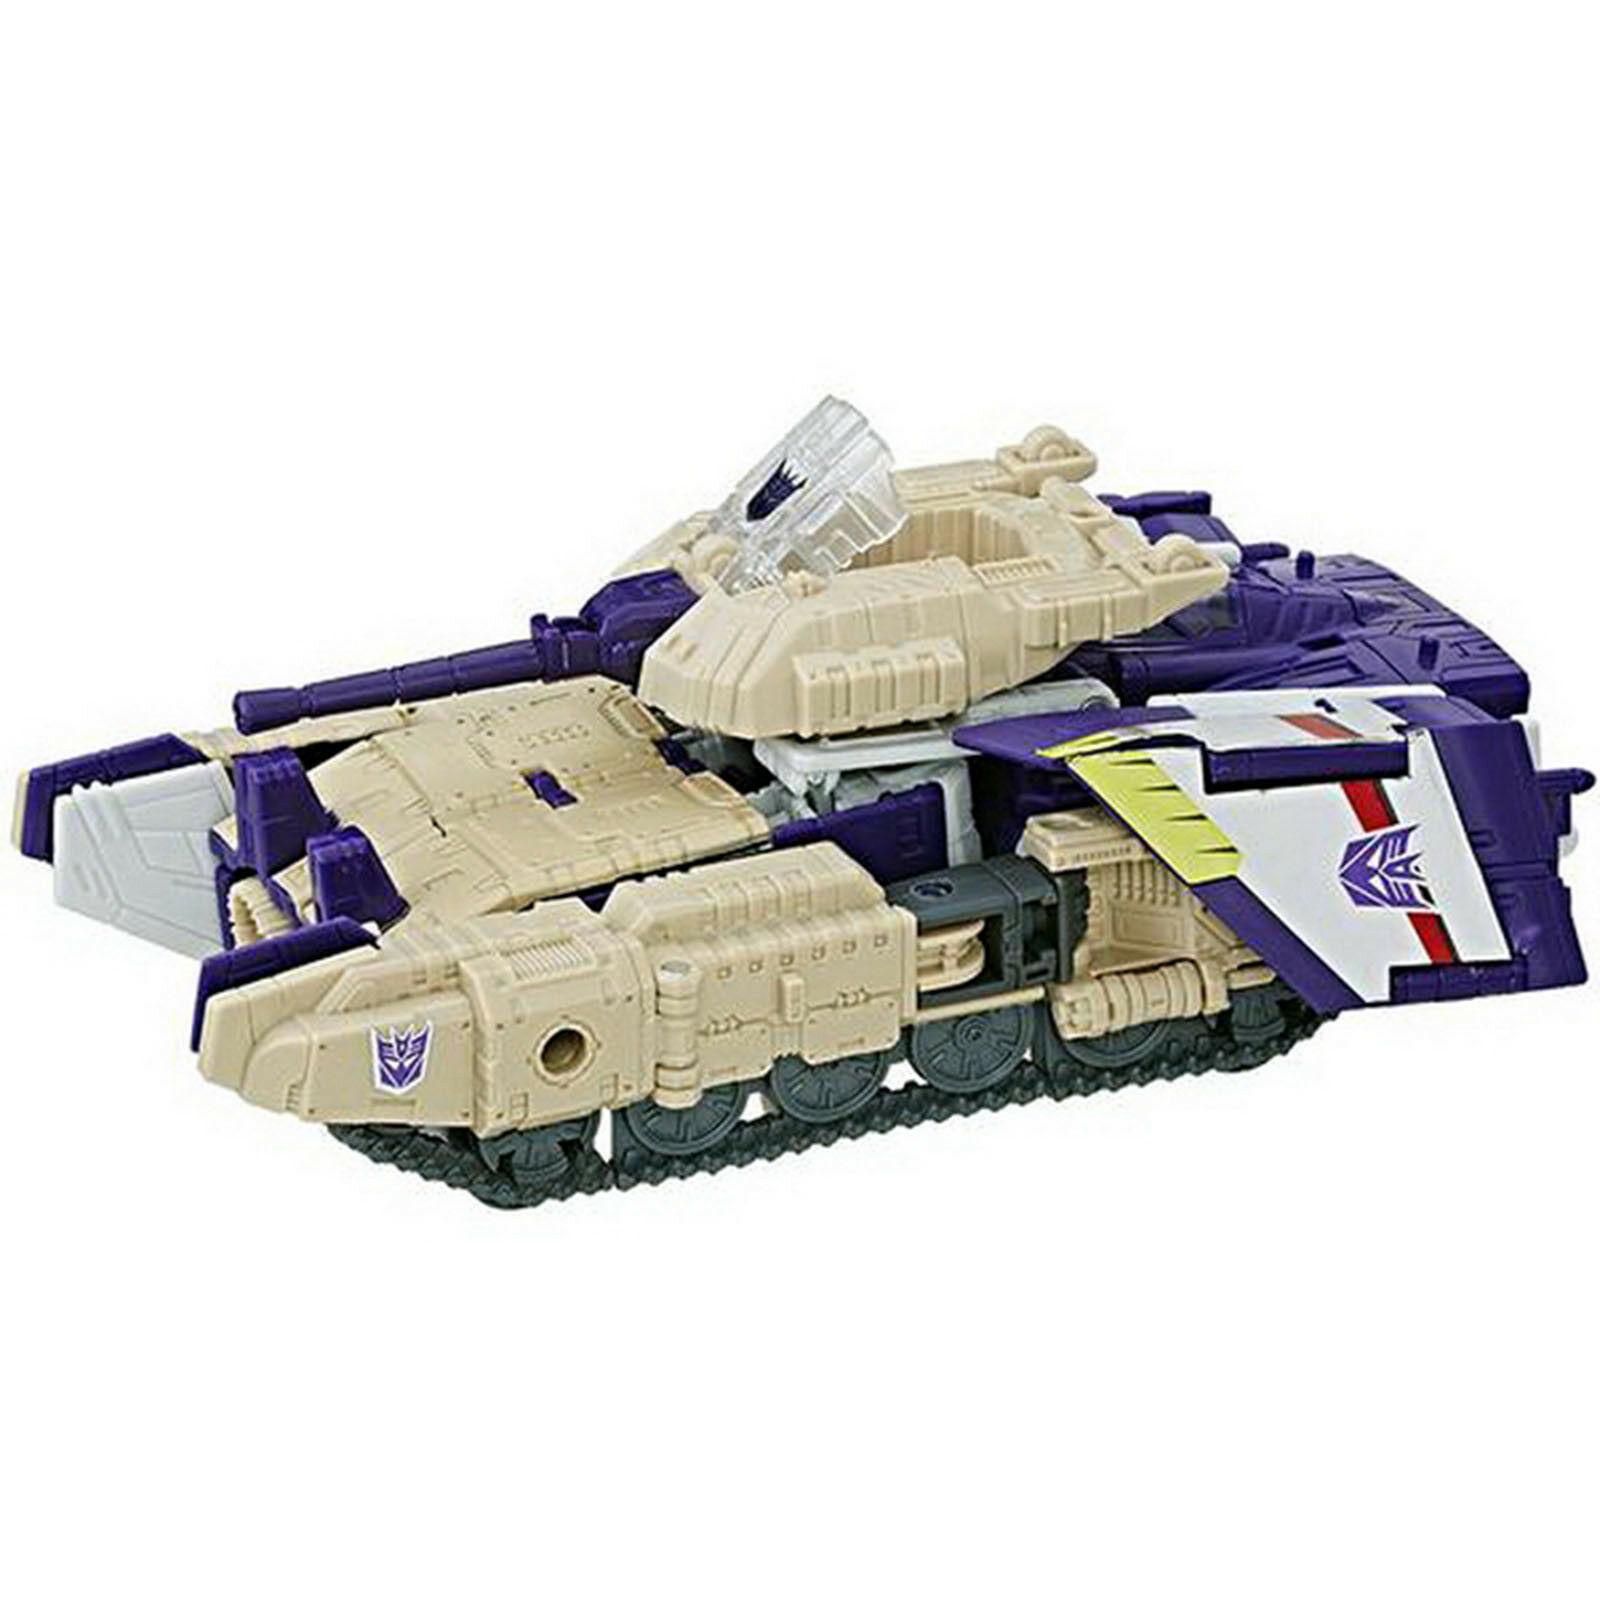 Transformers Transformers Transformers Titans Return Voyager DECEPTICON HAZARD & BLITZWING Action Kids New 13902b